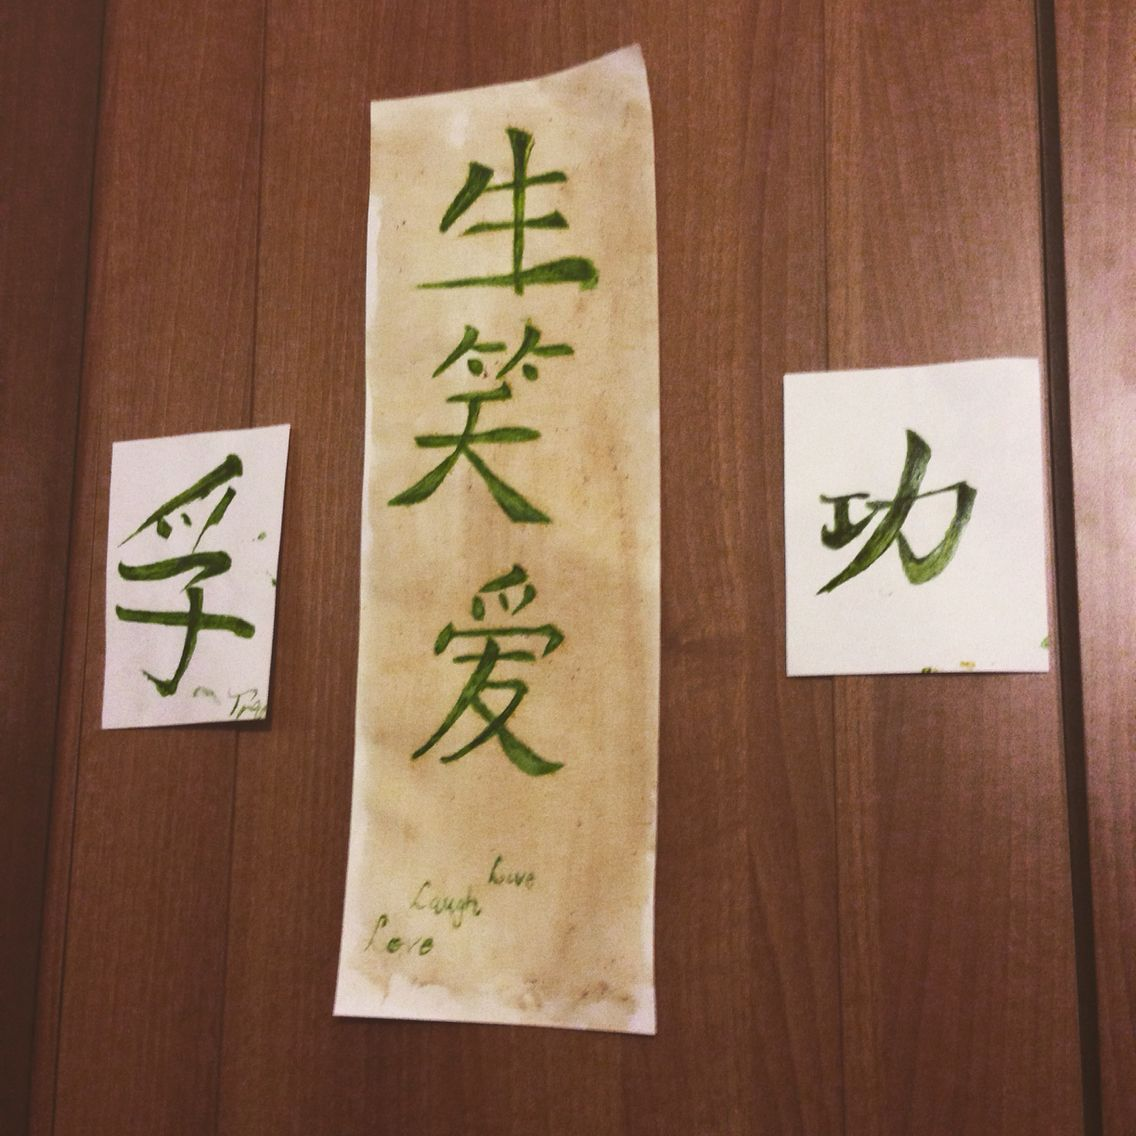 Calligraphy Work Using Chinese Symbols For My As Art Exam Prep The